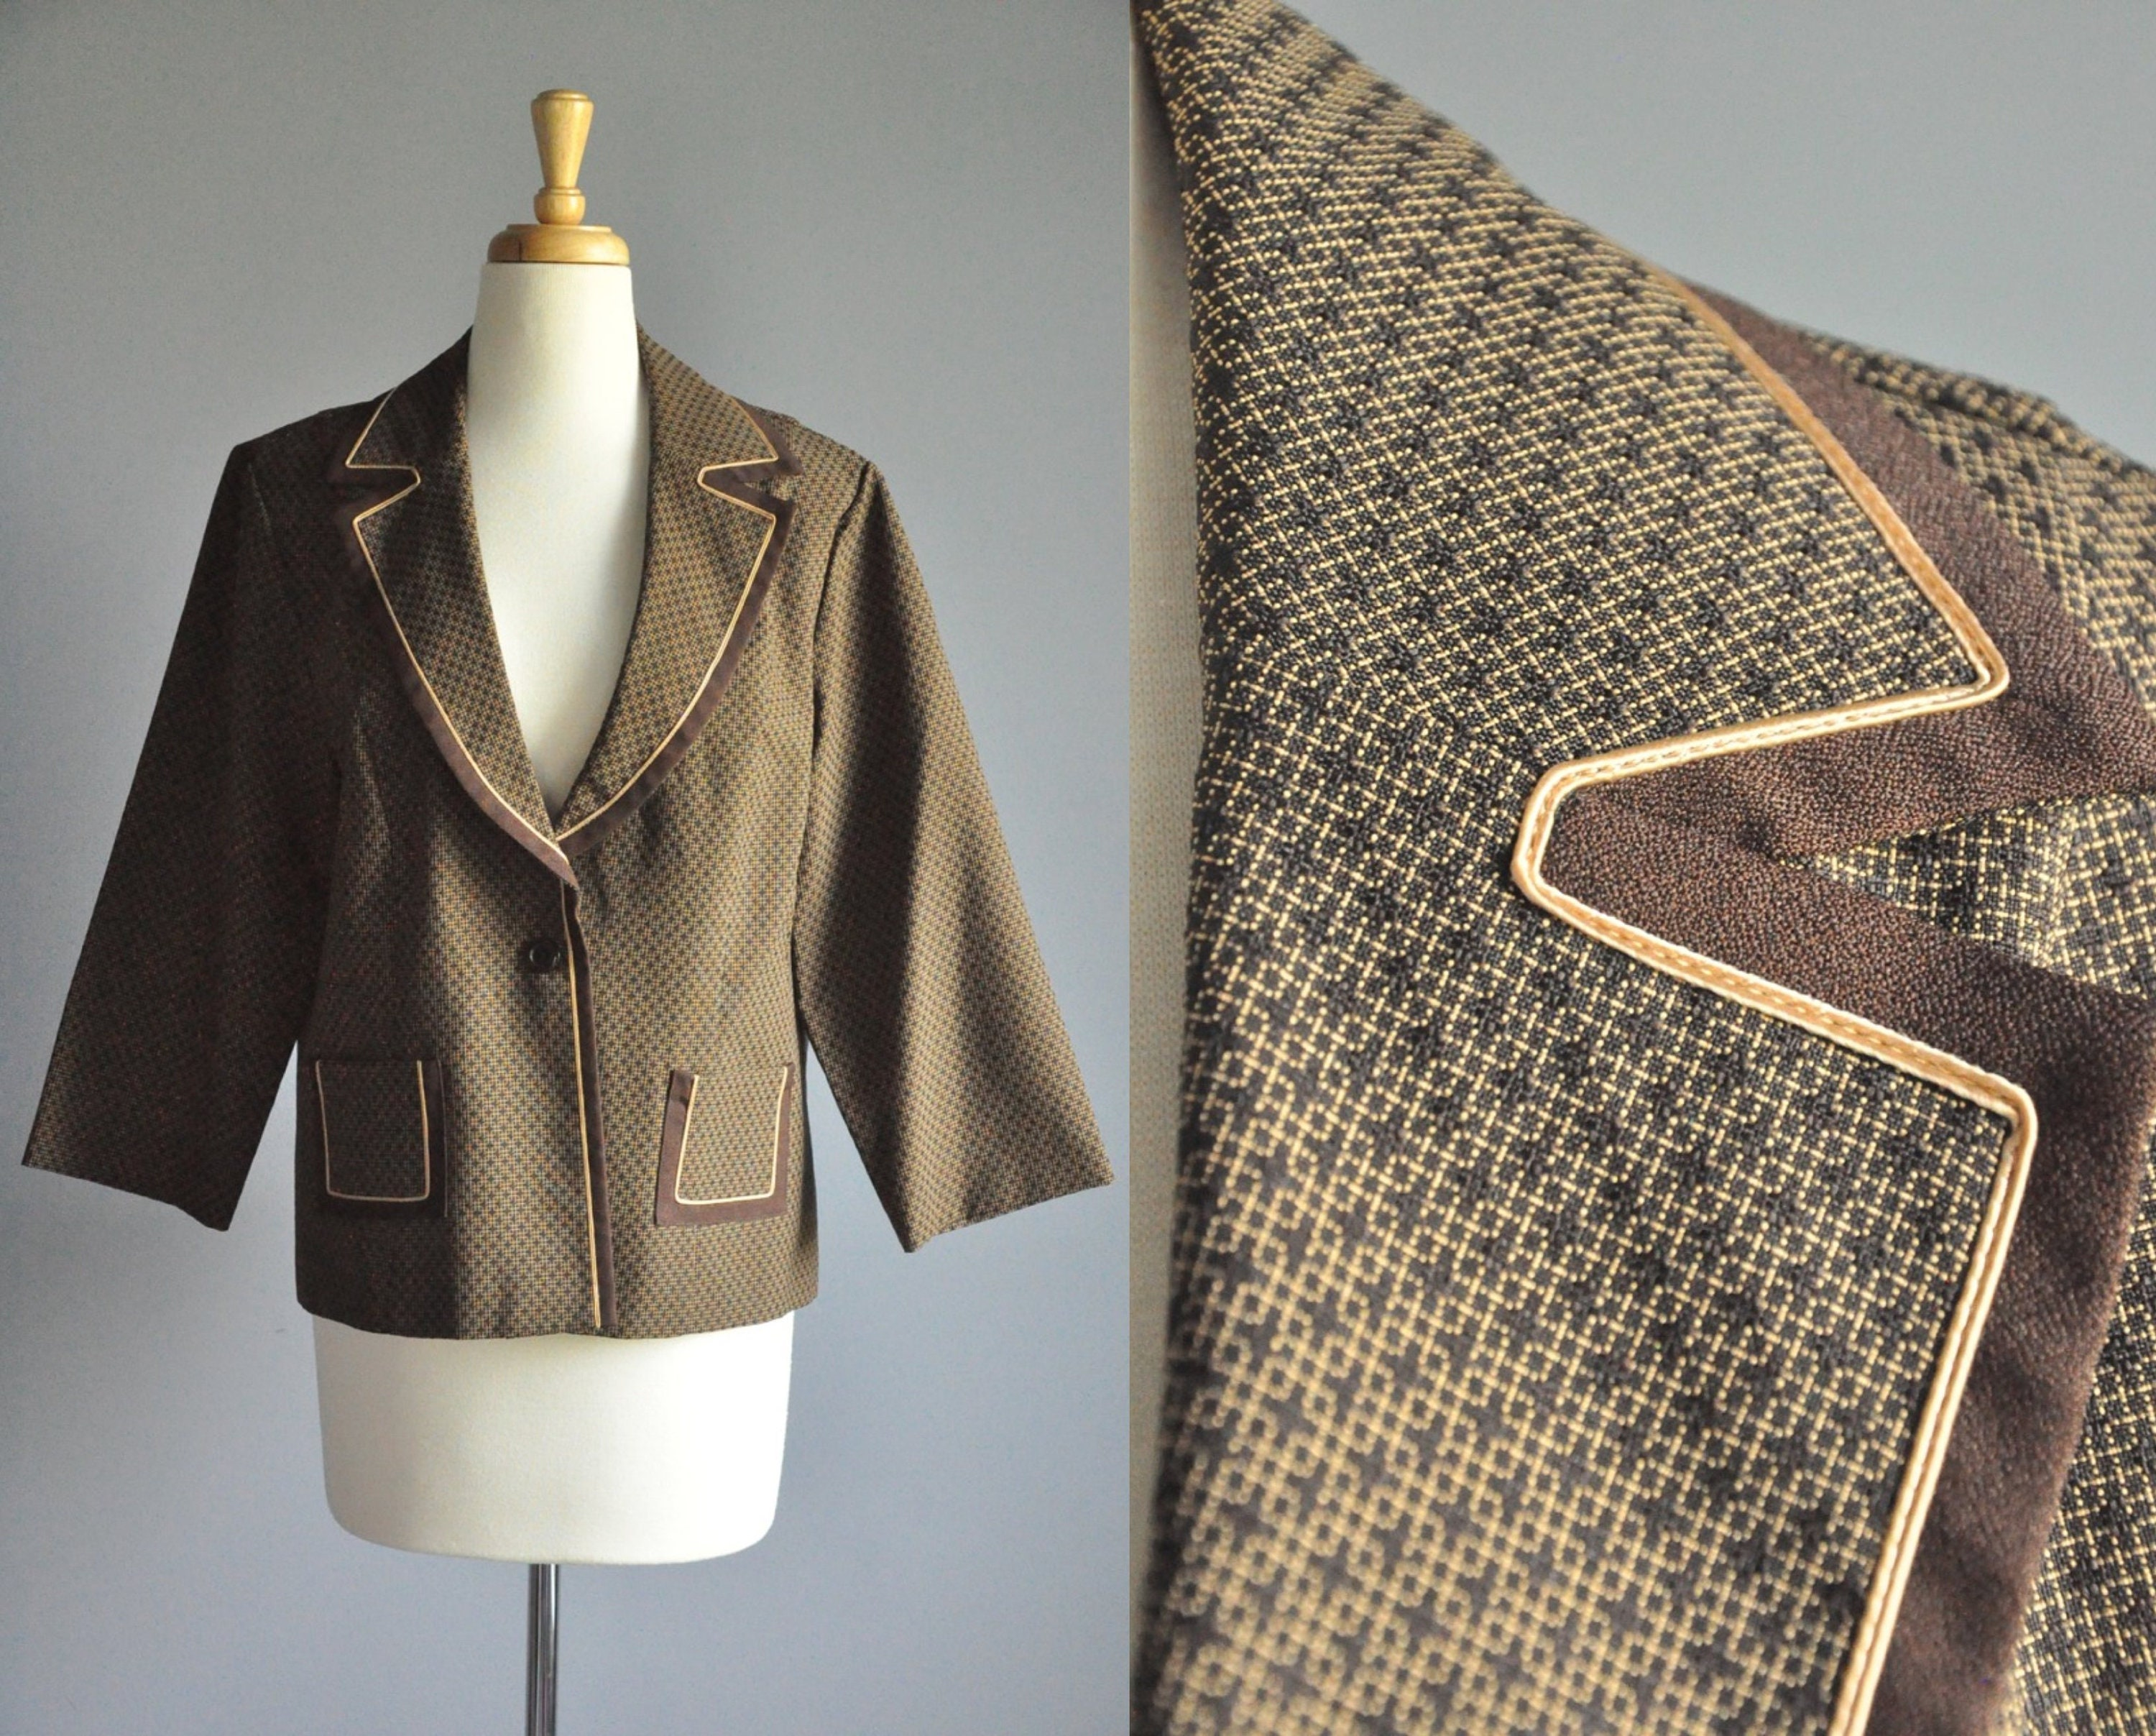 80s Dresses   Casual to Party Dresses 80S Blazer With Gold Trim, Vintage Womens Collared One Button Brown Suit Jacket, Business Casual Coat, 1980S Clothes Professional Fashion $0.00 AT vintagedancer.com